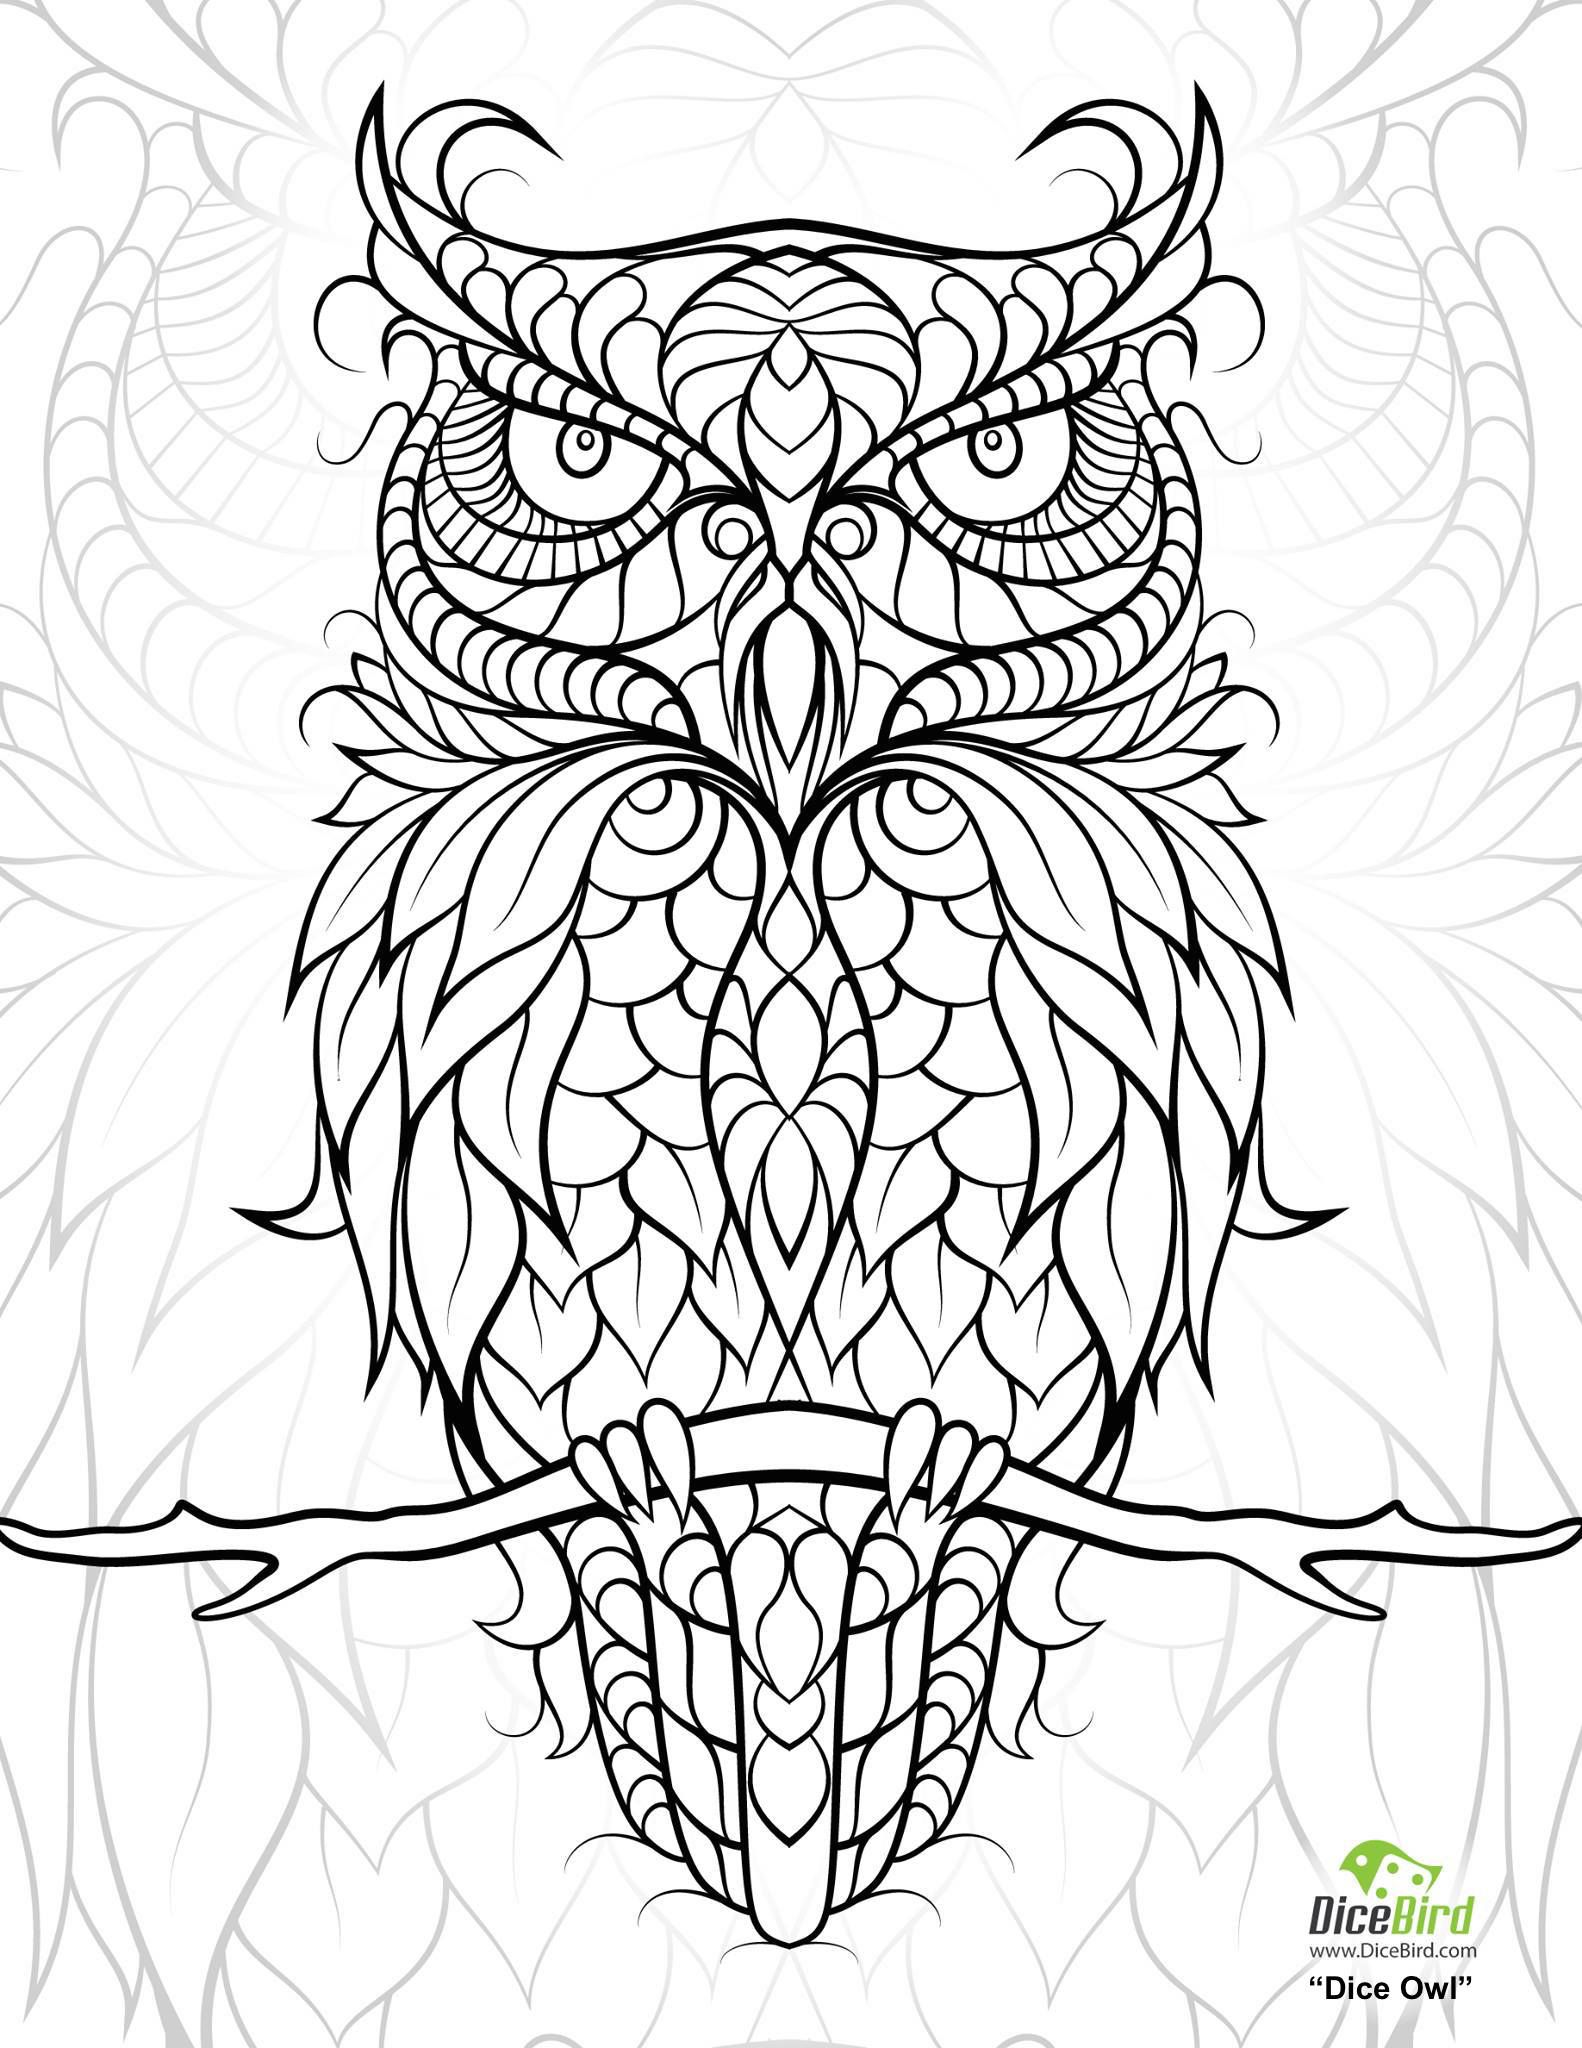 Adults colouring book pages - Diceowl Free Printable Adult Coloring Pages